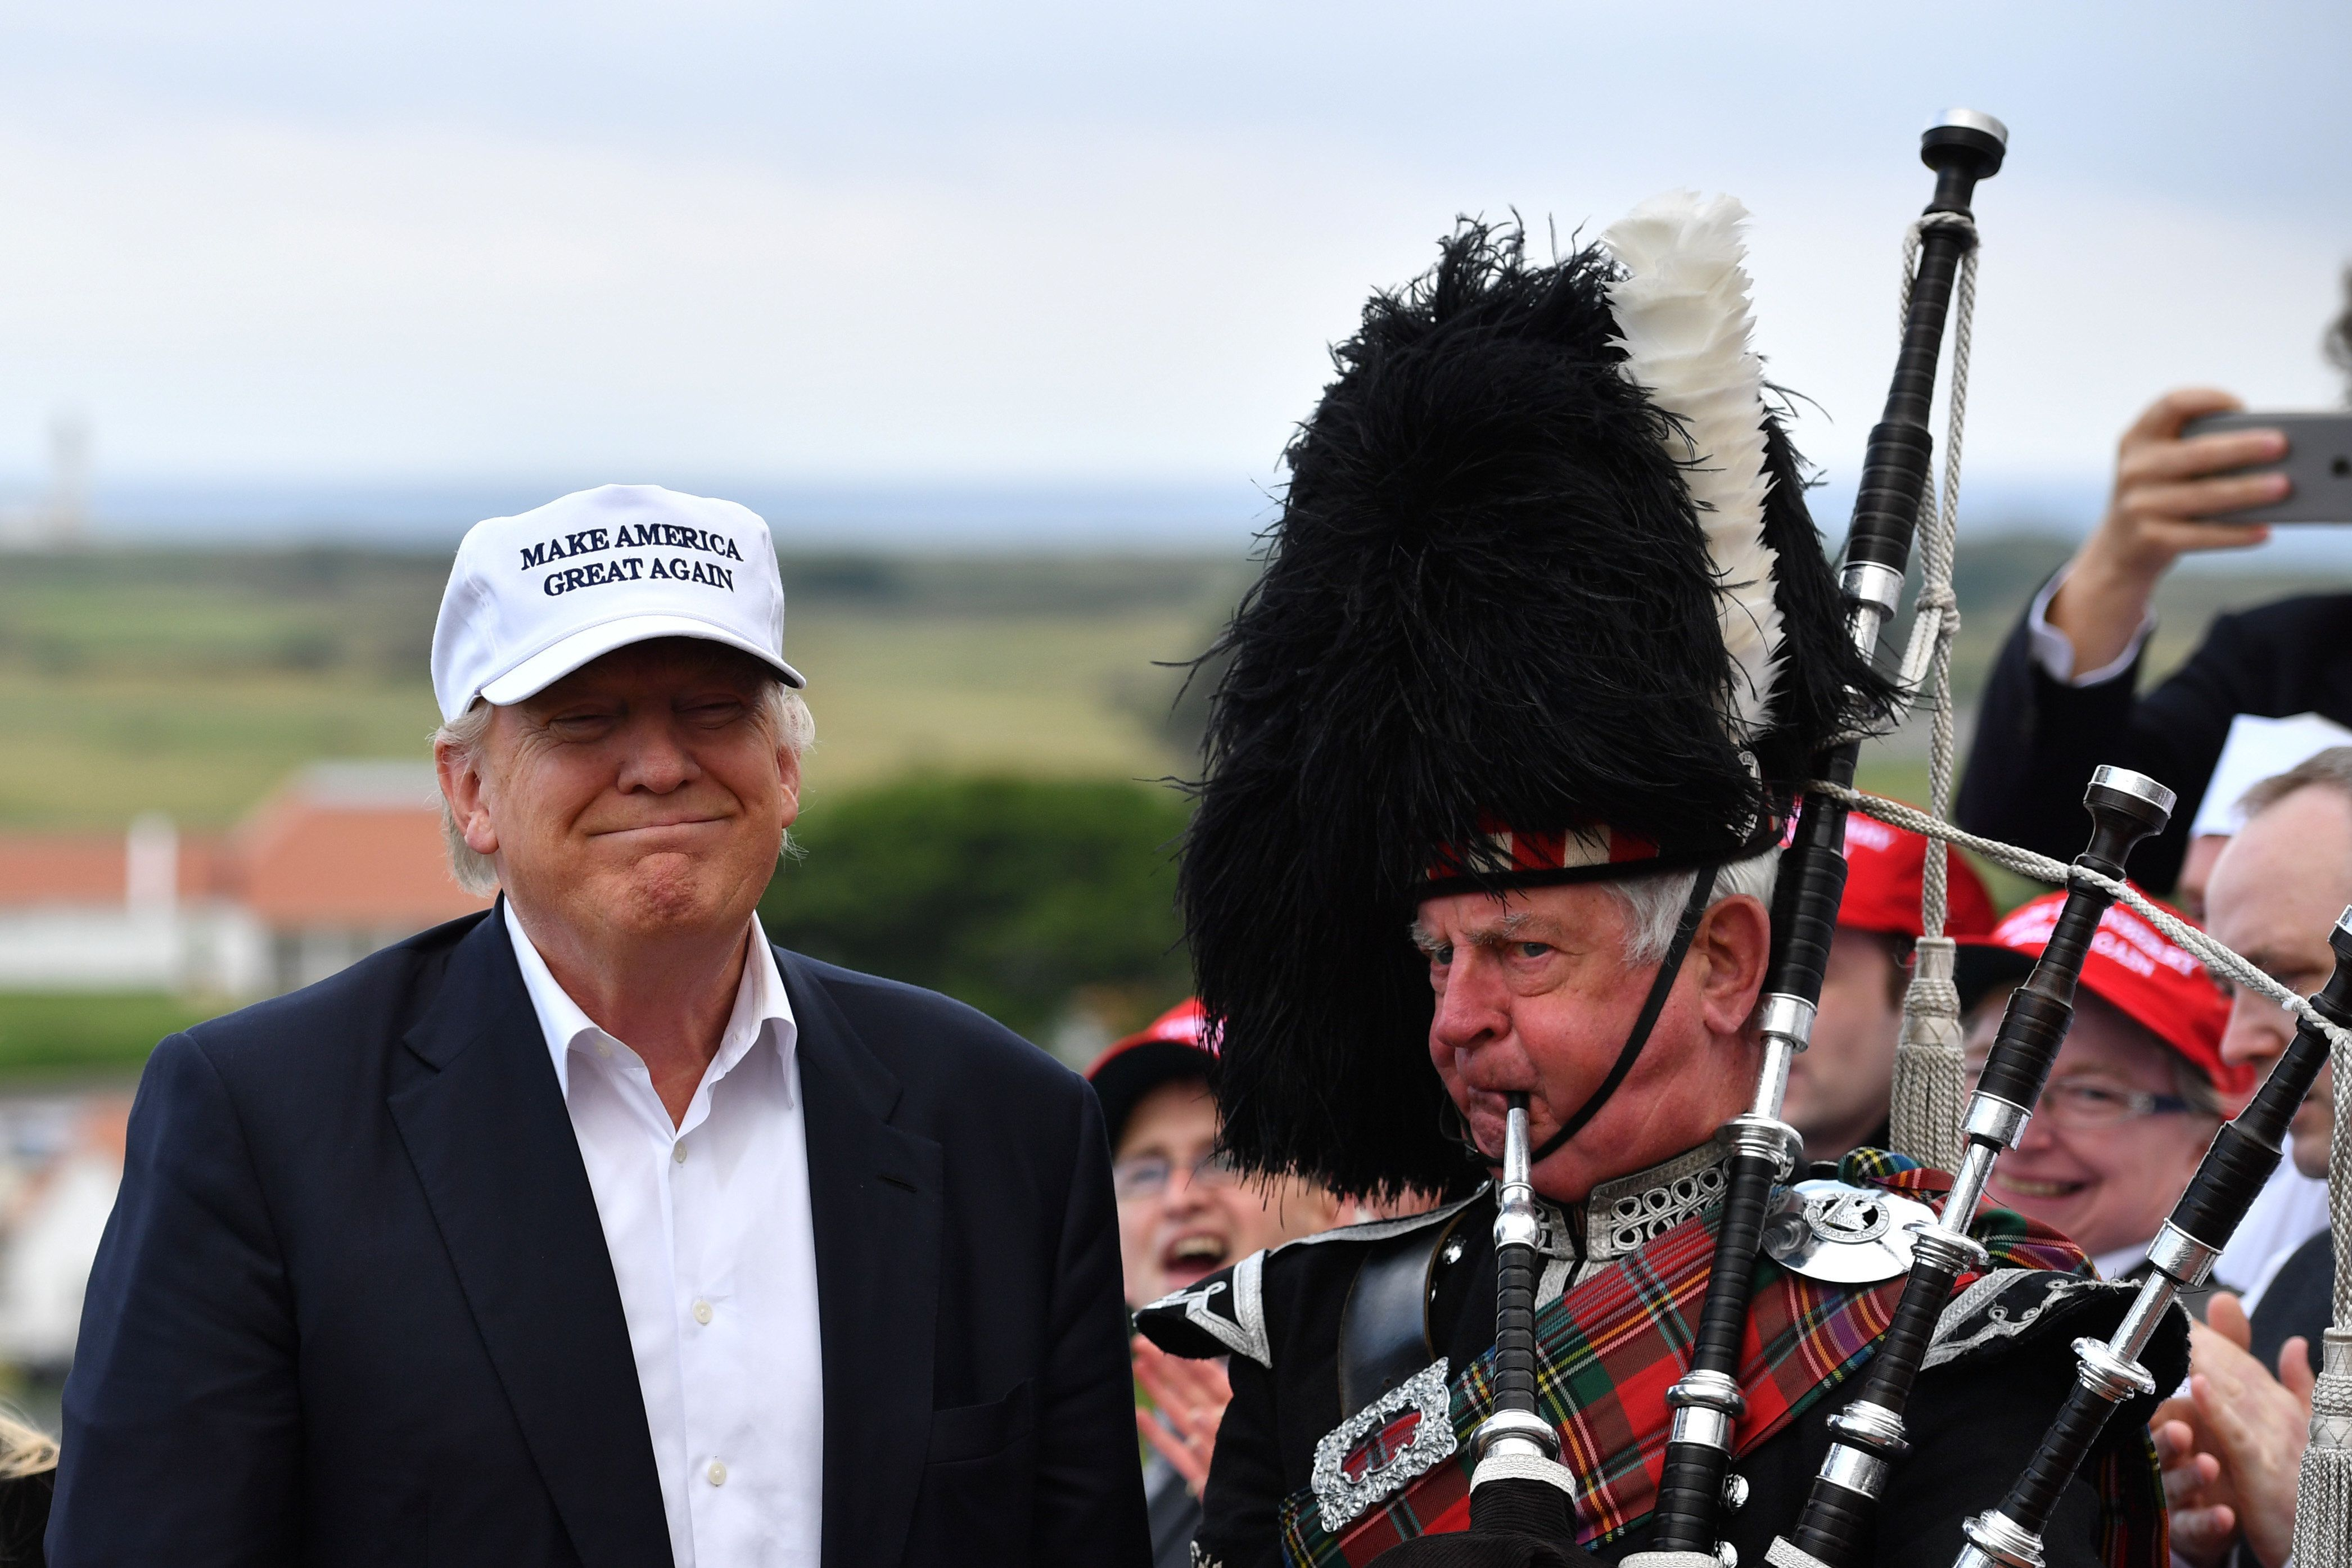 Donald Trump is going to get 'very involved' with post-Brexit Britain